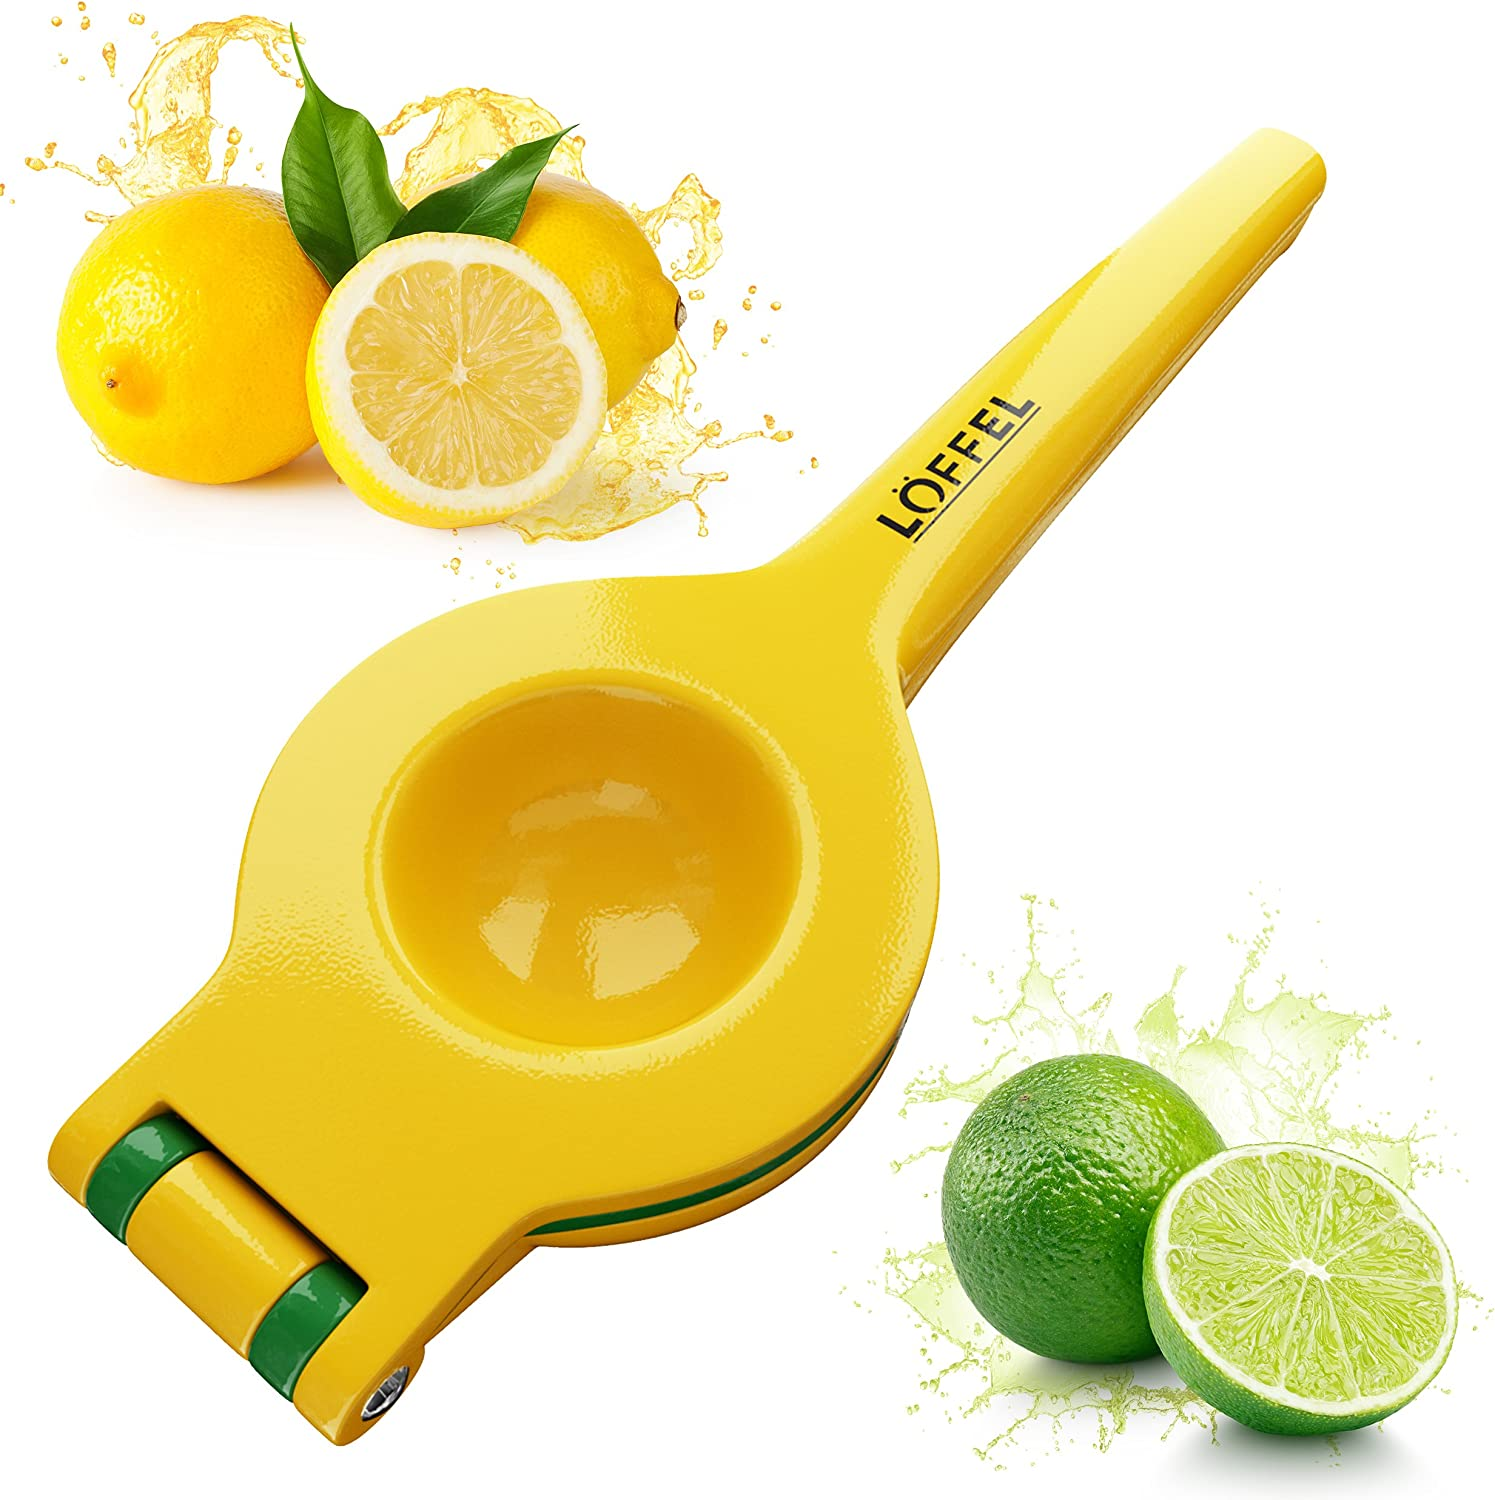 Key Lime Manual Juicer Squeezer Strainer Exprimidor Heavy Duty From Mexico New